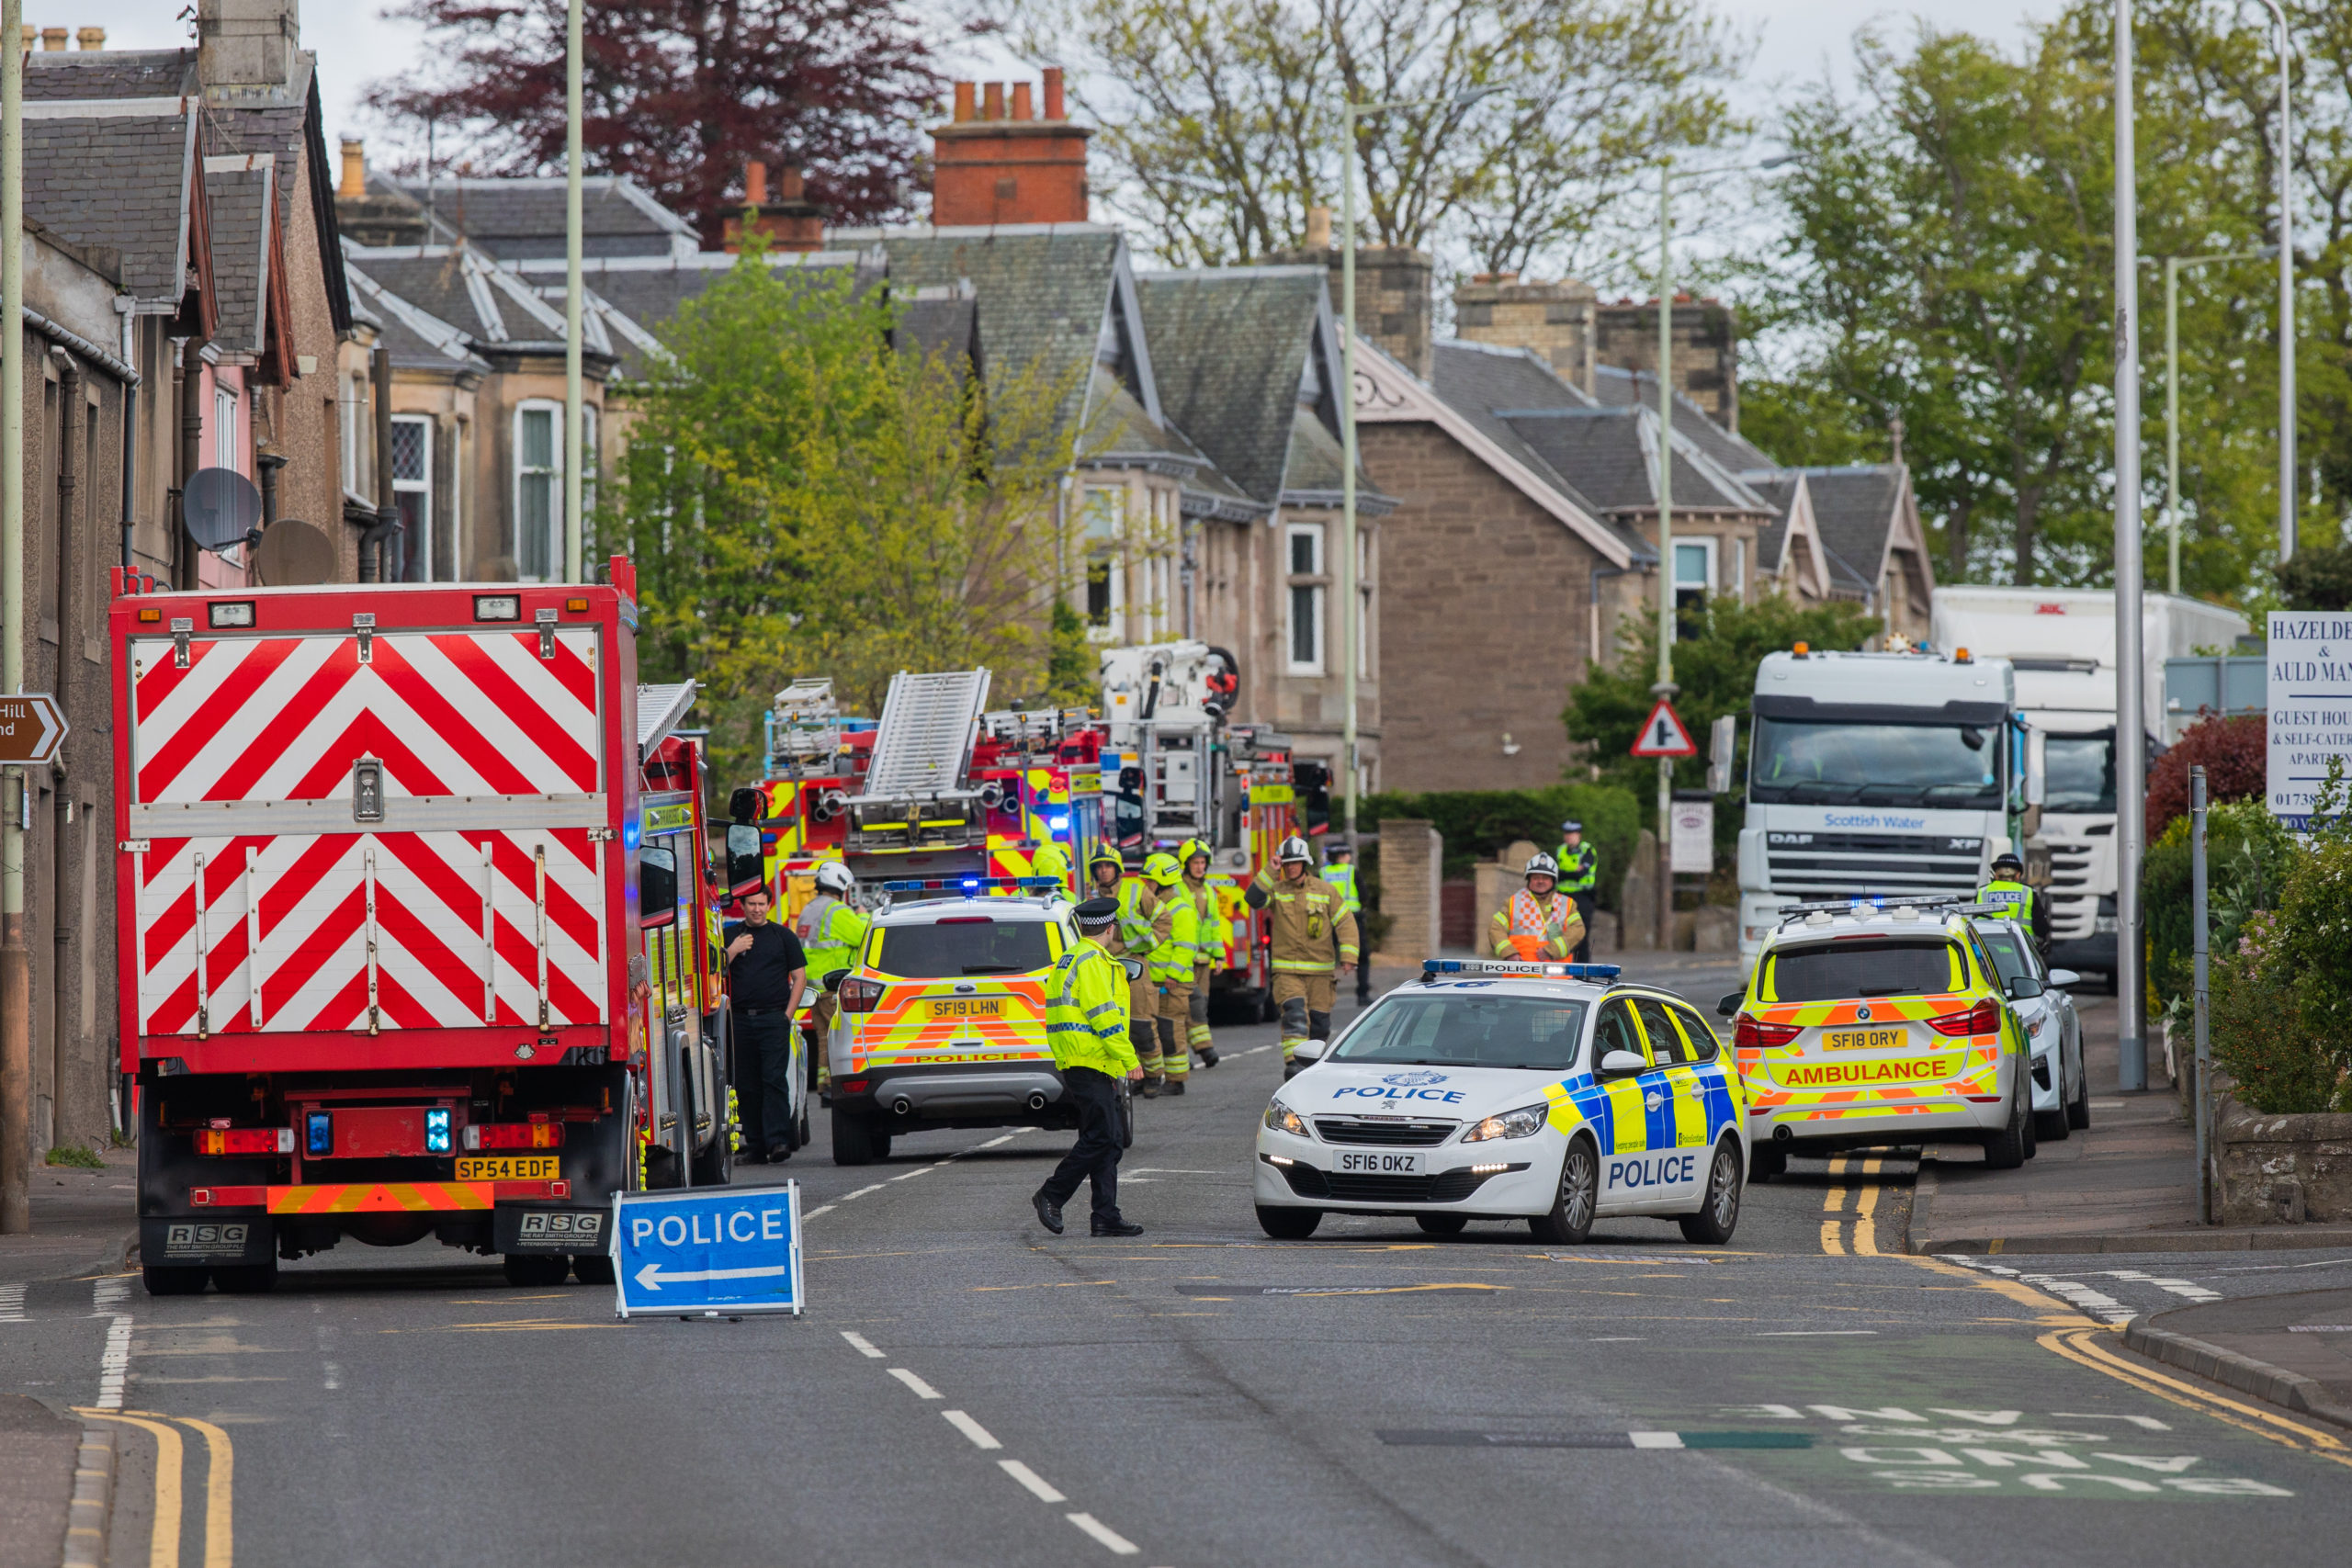 The scene of the collision in Bridgend.